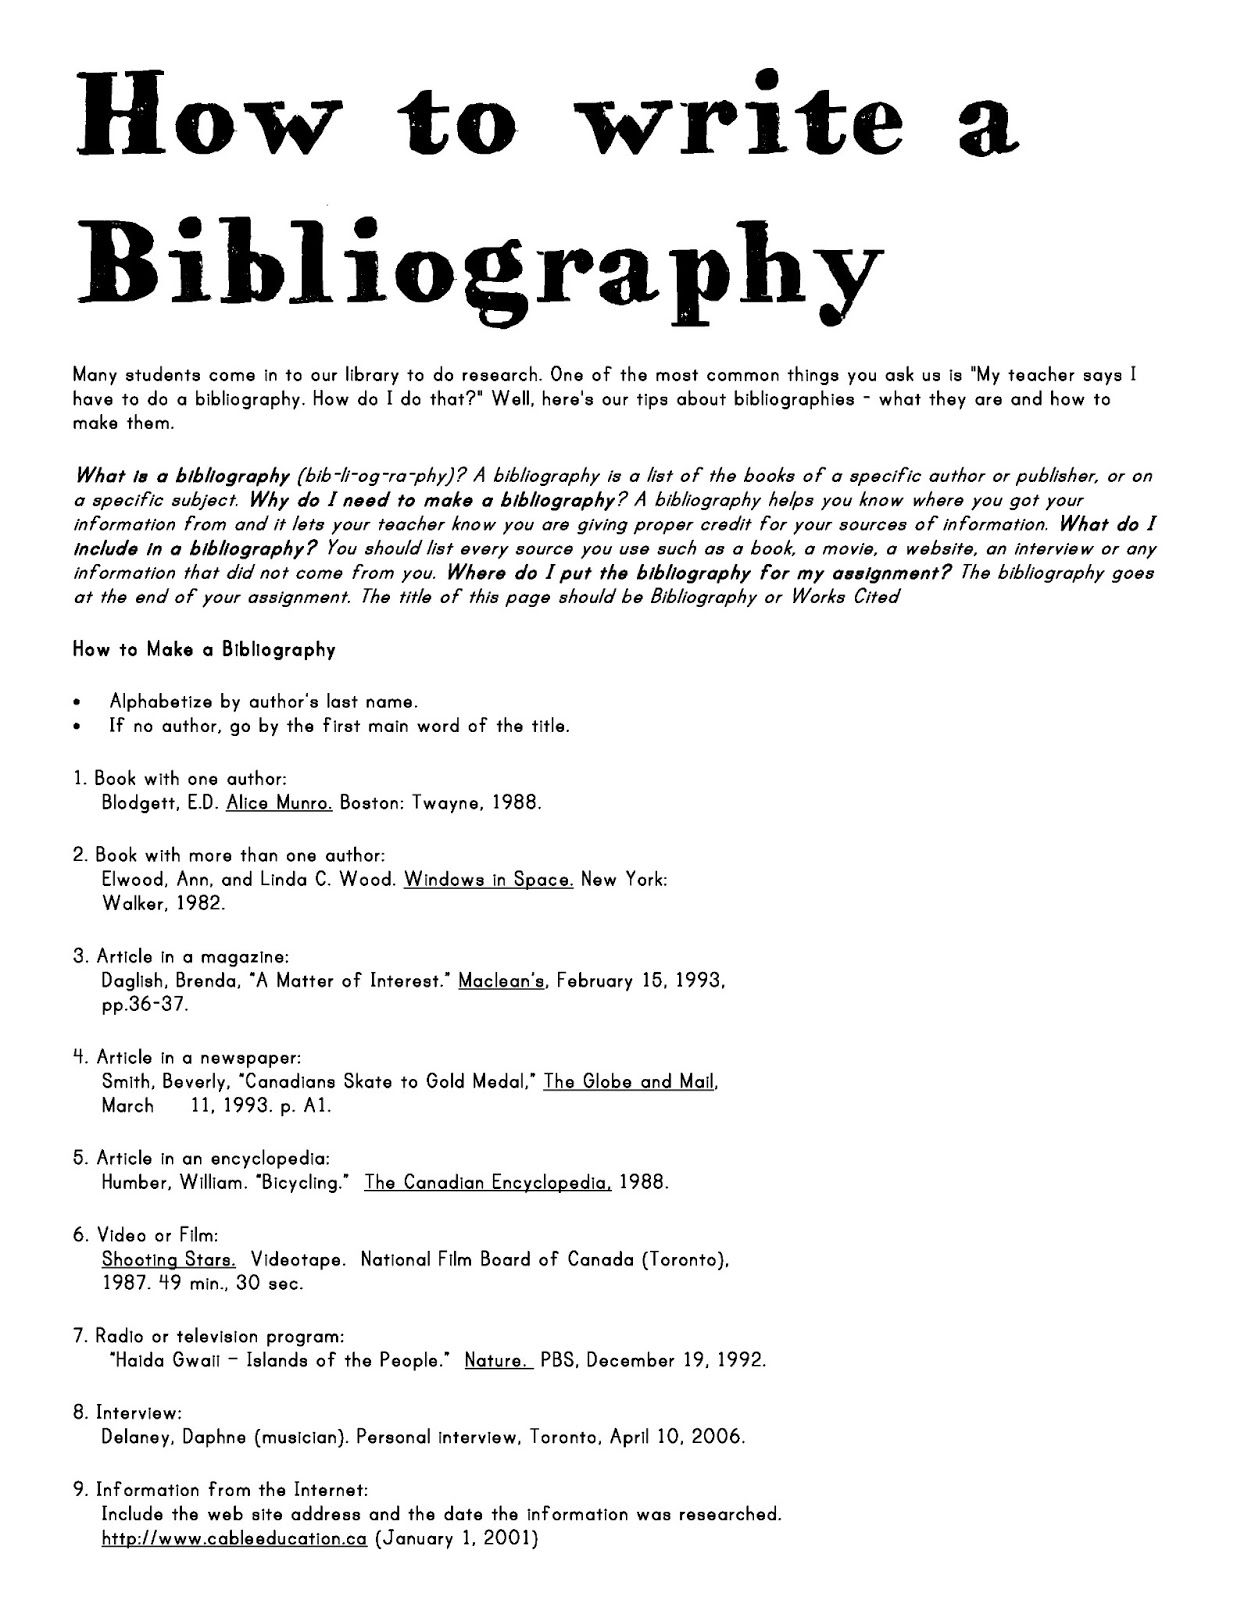 How To Write A Bibliography  School Library  Ideas